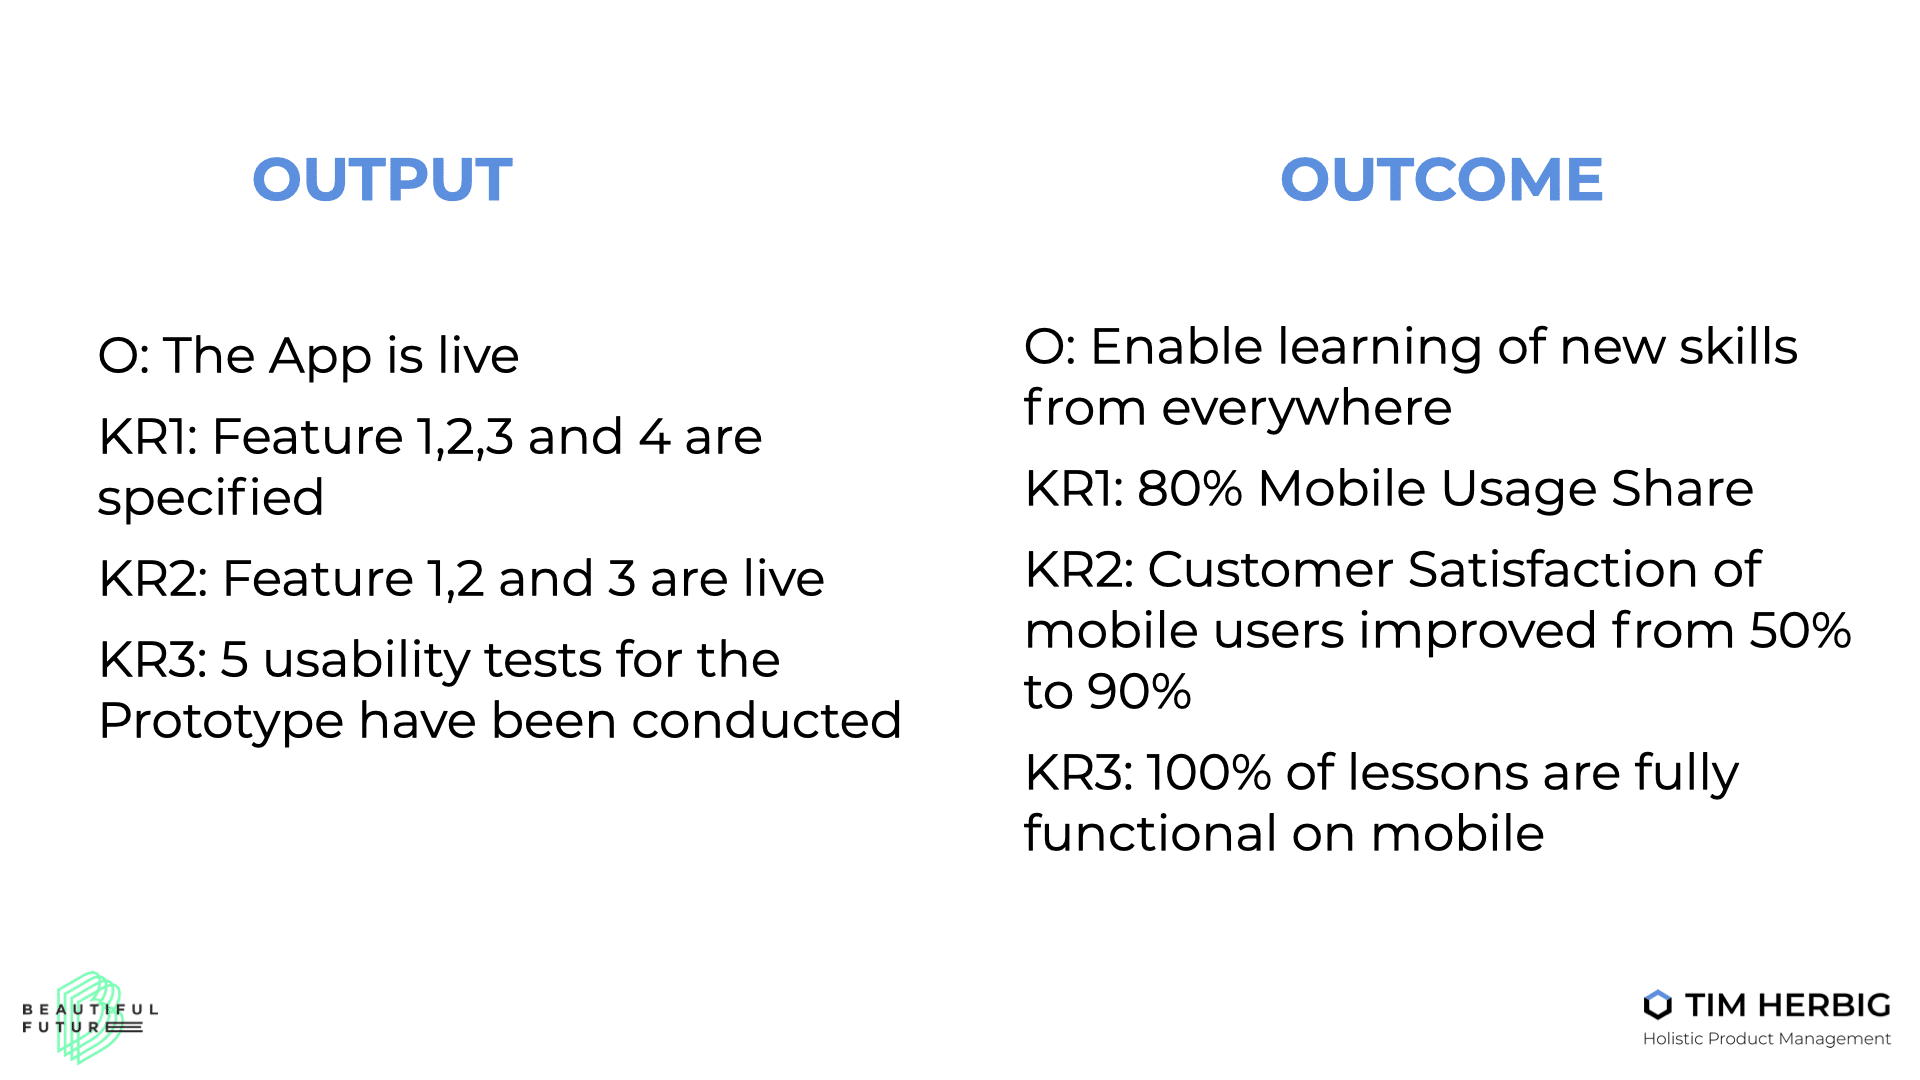 Outcome and Output Product Goals OKR Comparison